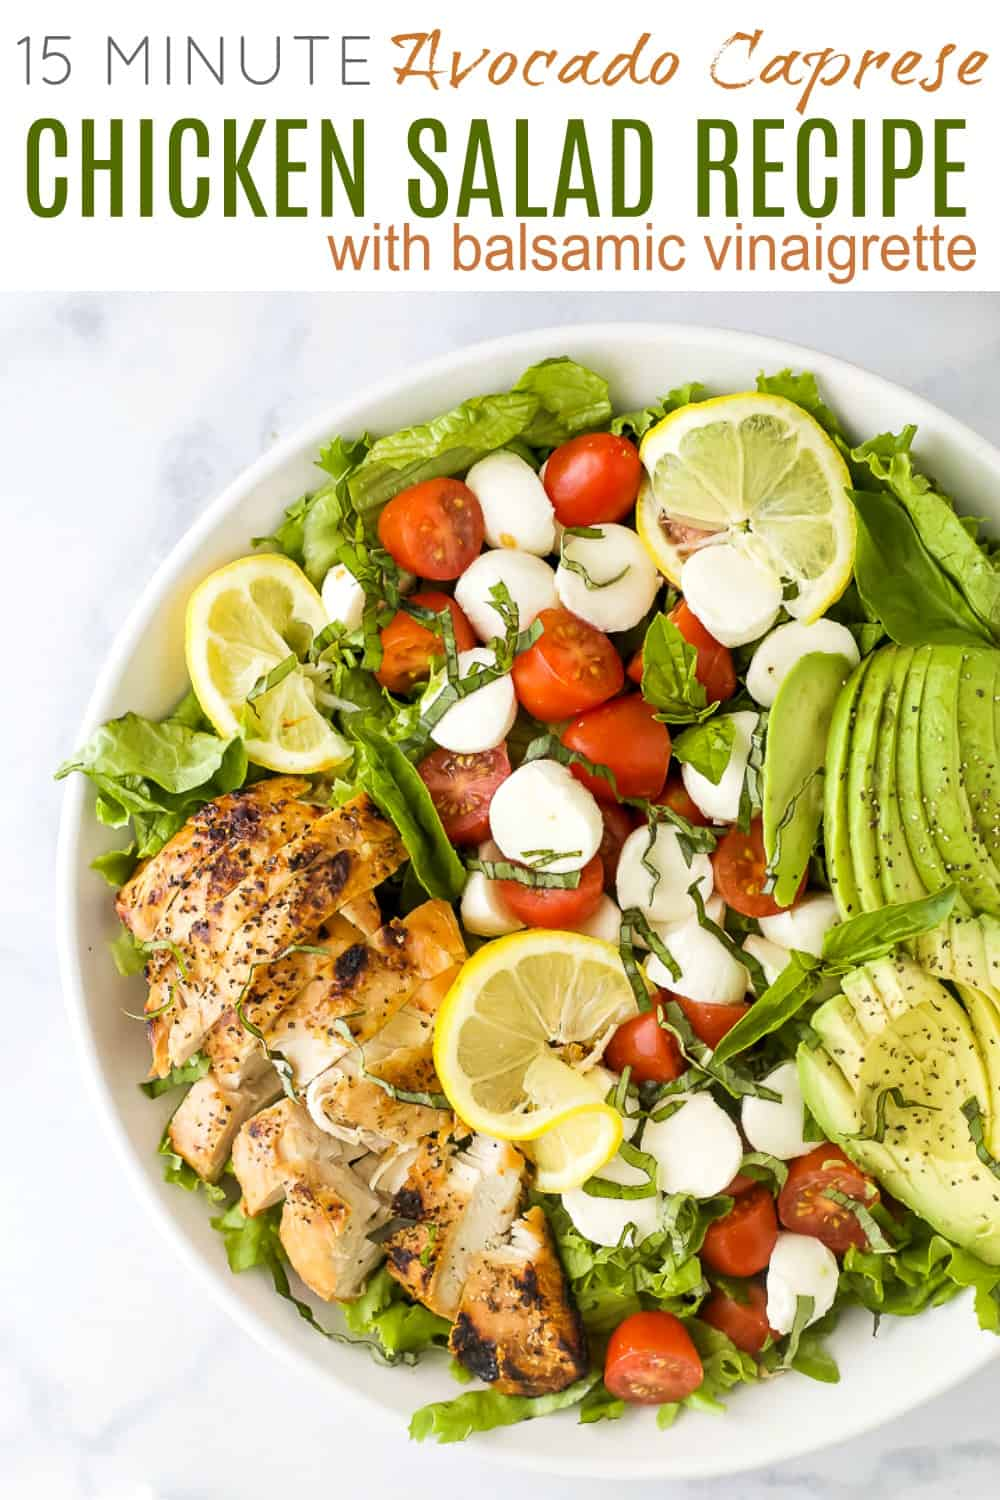 pinterest image for avocado caprese chicken salad with balsamic vinaigrette